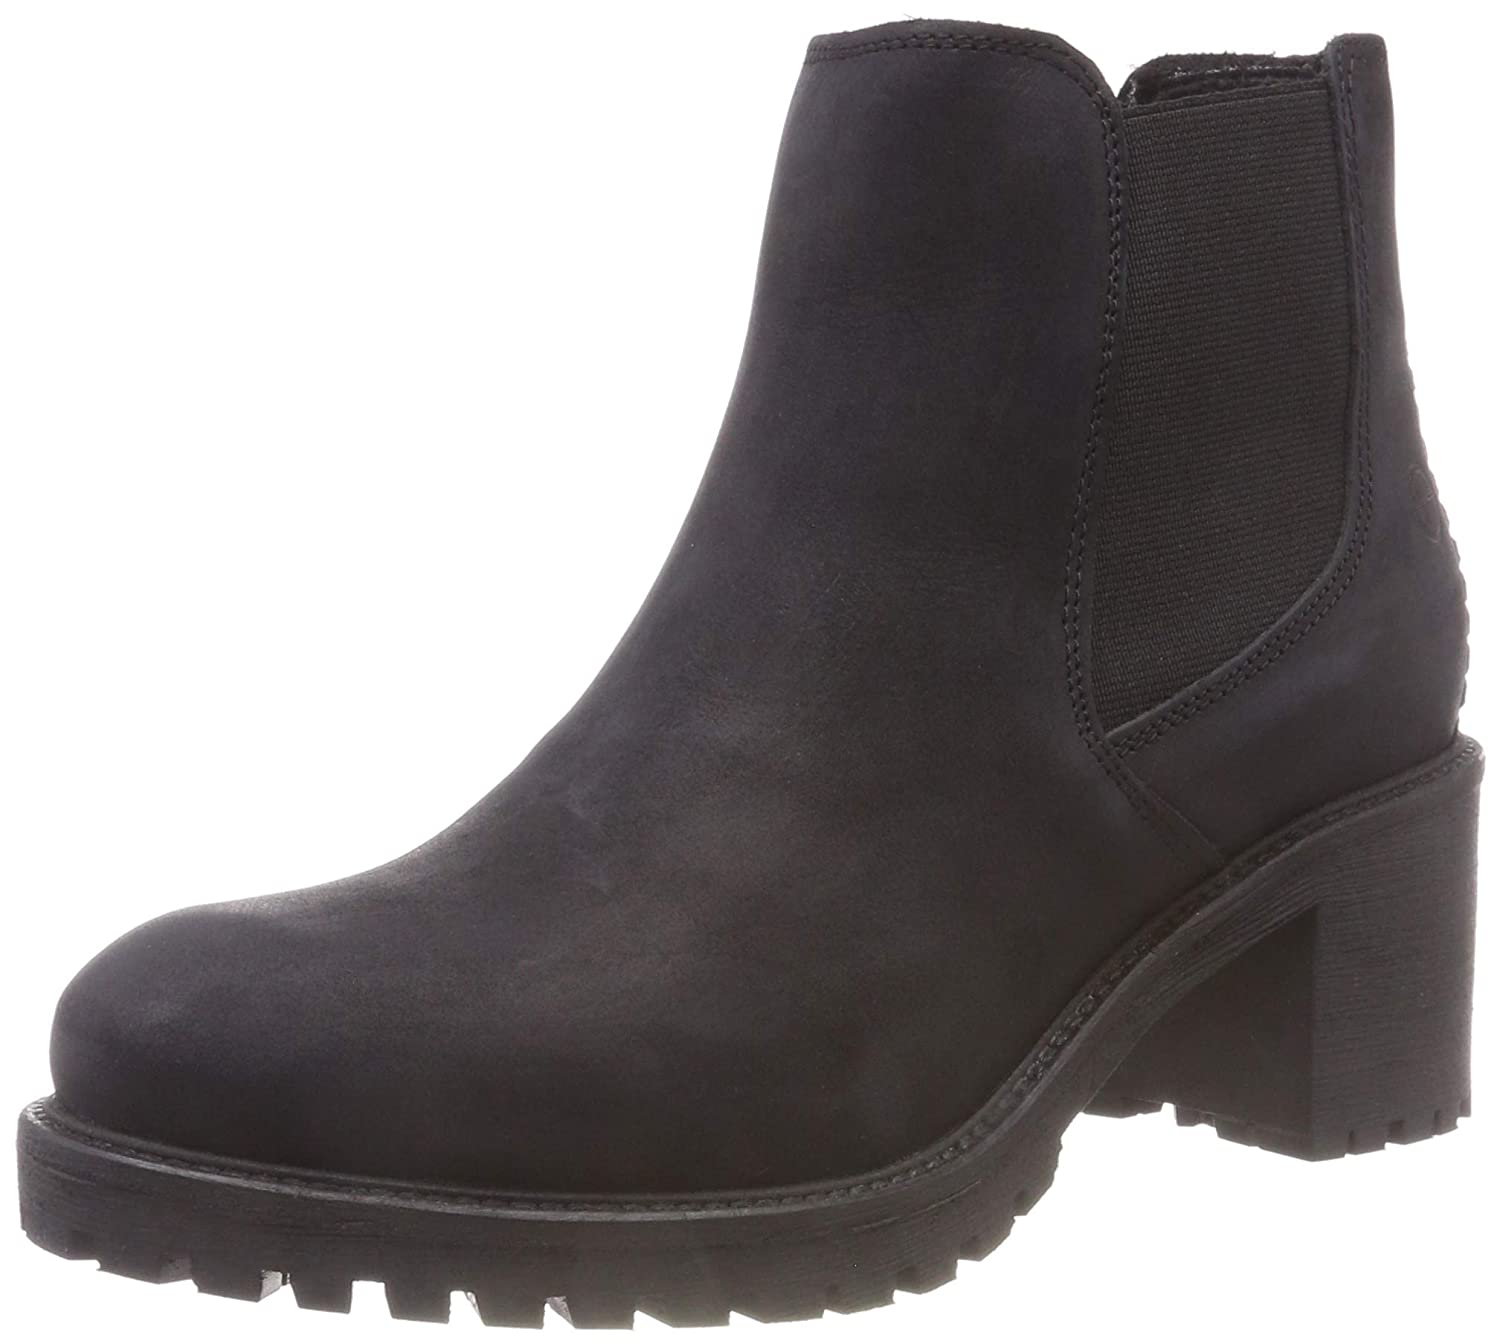 Tamaris 25447-21, Bottes Chelsea Femme 1) Noir Tamaris Femme (Black 1) 5bb4d6a - fast-weightloss-diet.space